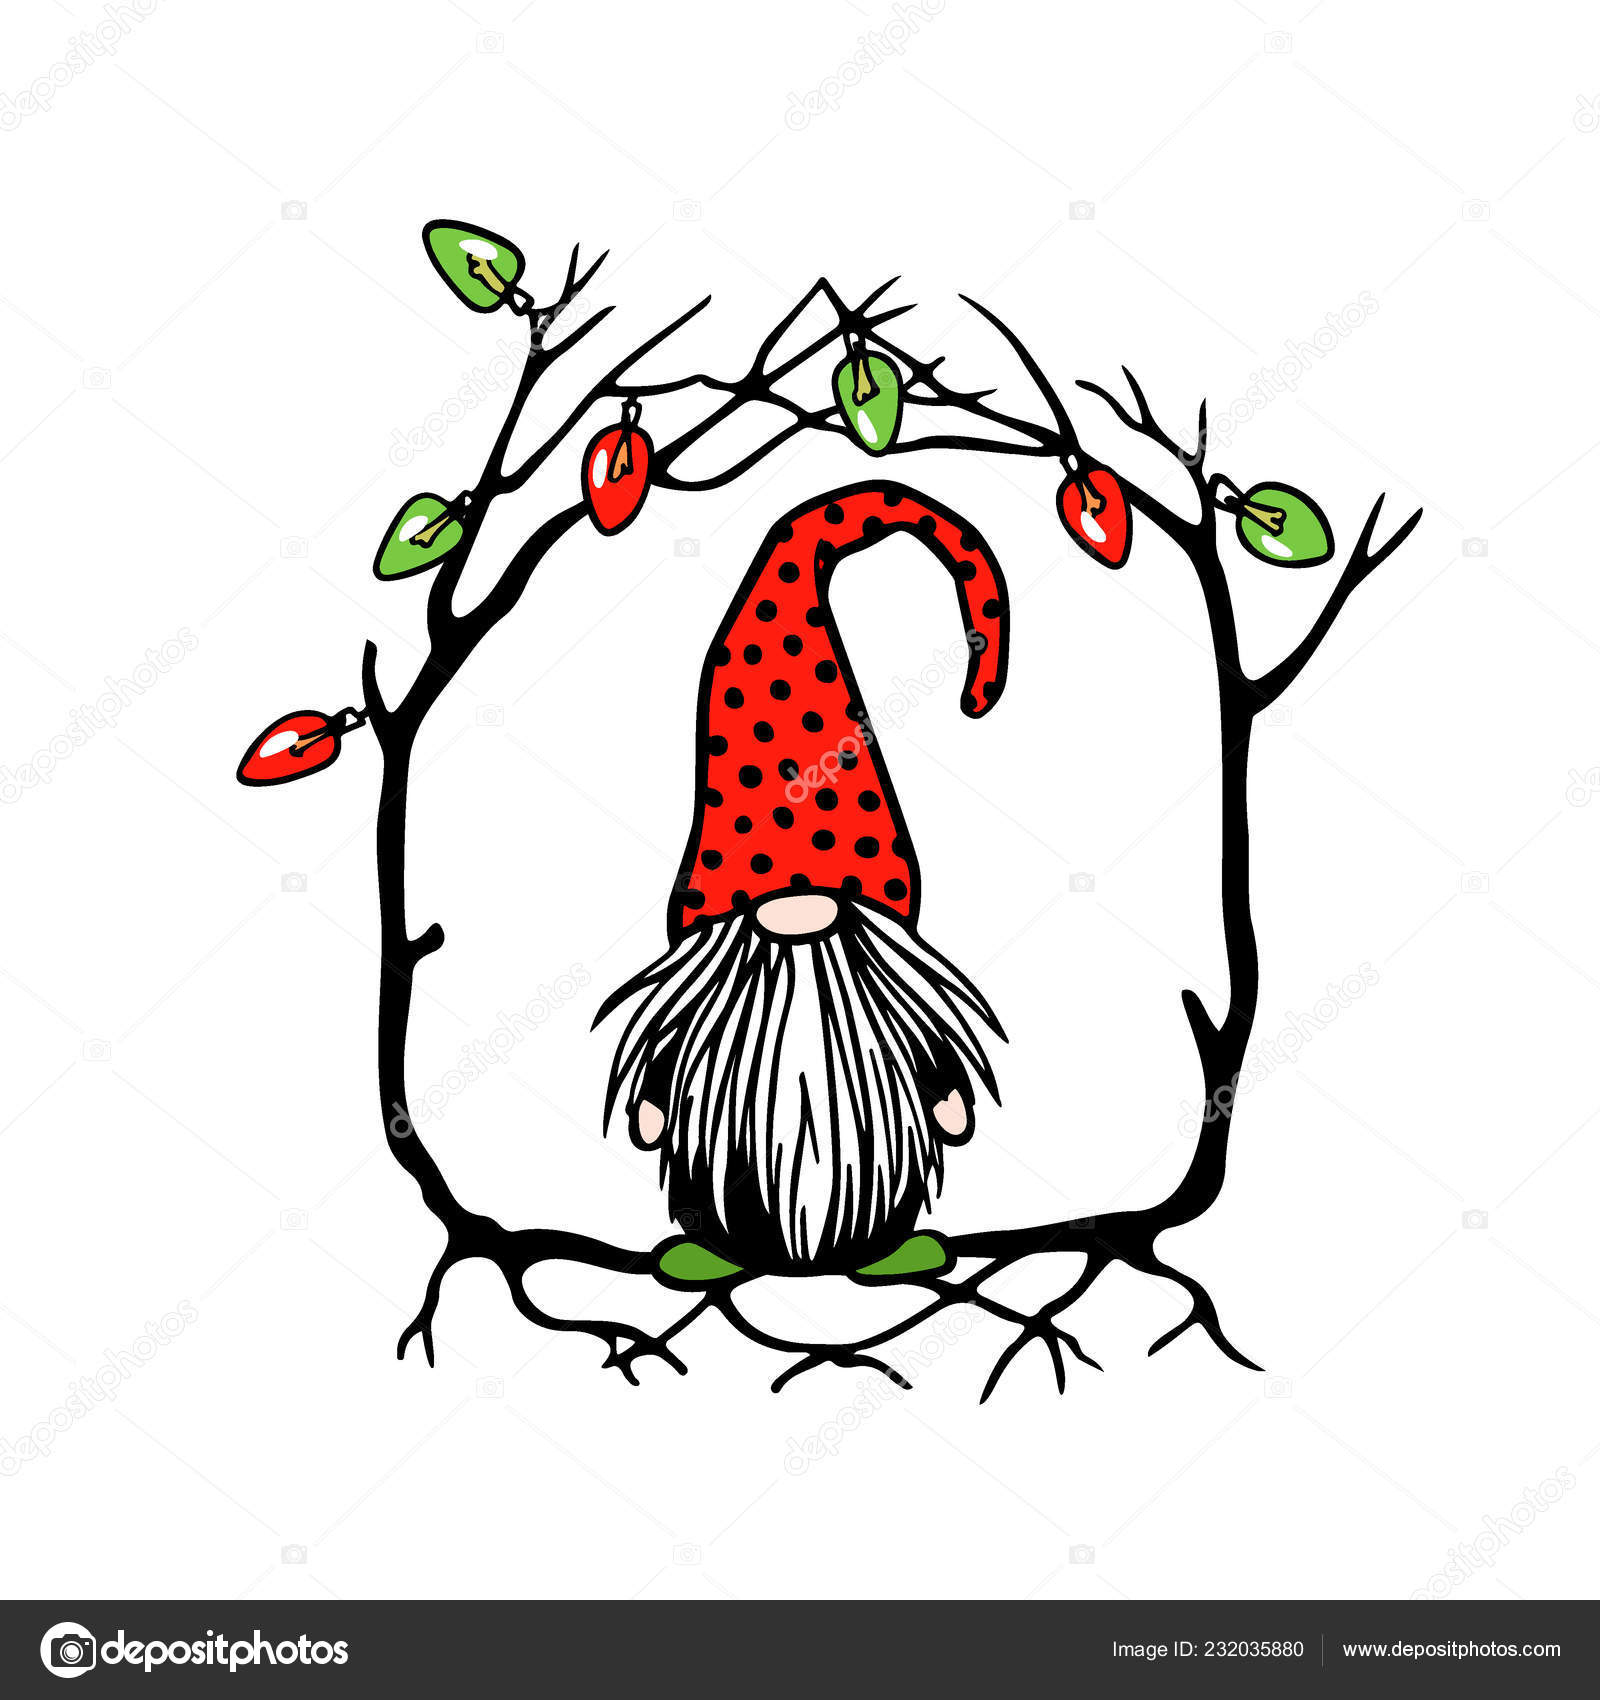 Christmas Gnome Drawing.Hand Drawn Christmas Gnome Stock Vector C Ezhevica 232035880